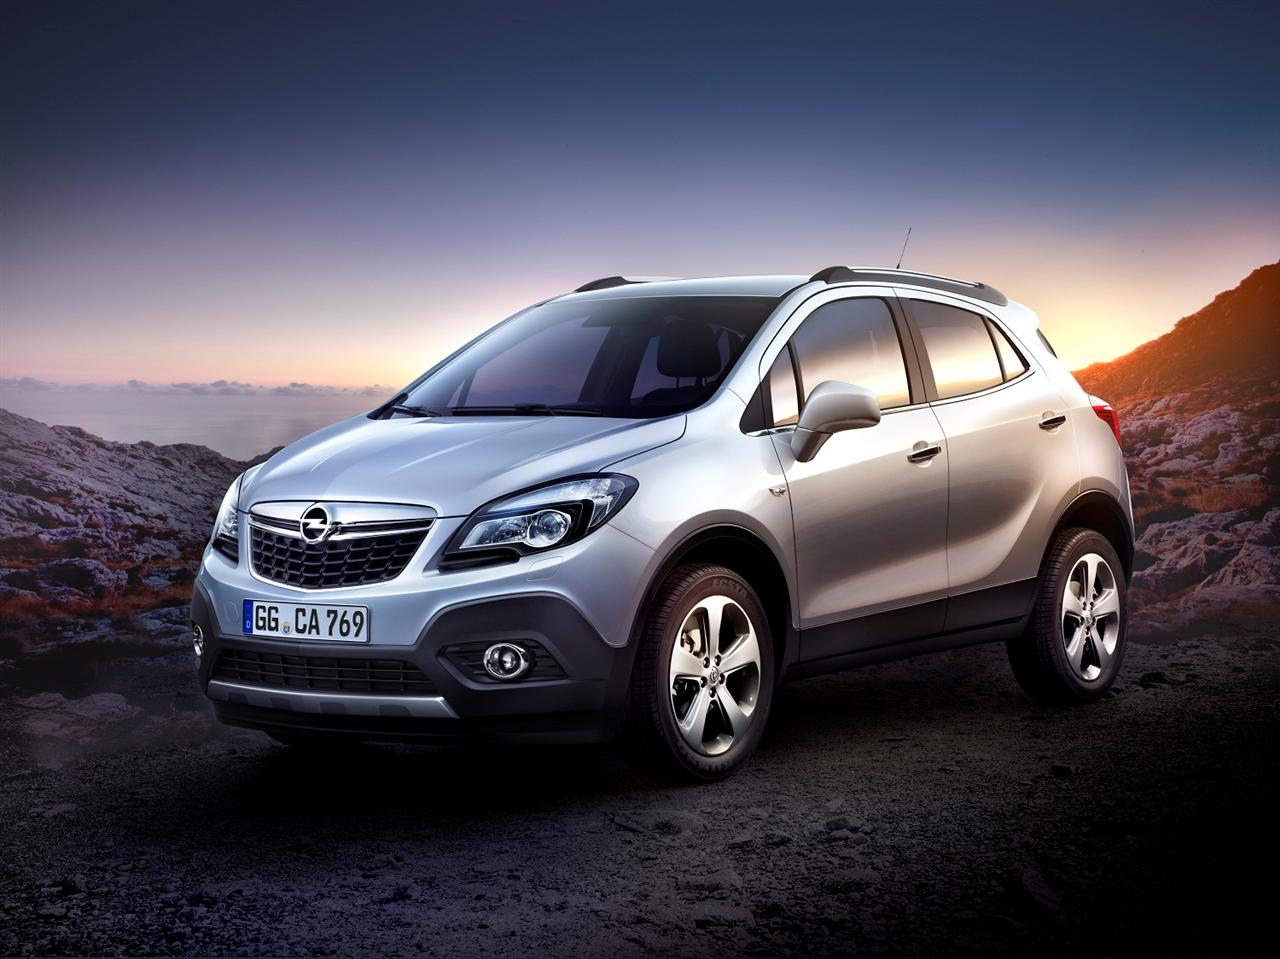 opel mokka is ontzettend deep espresso brown irmscher geeft opel mokka